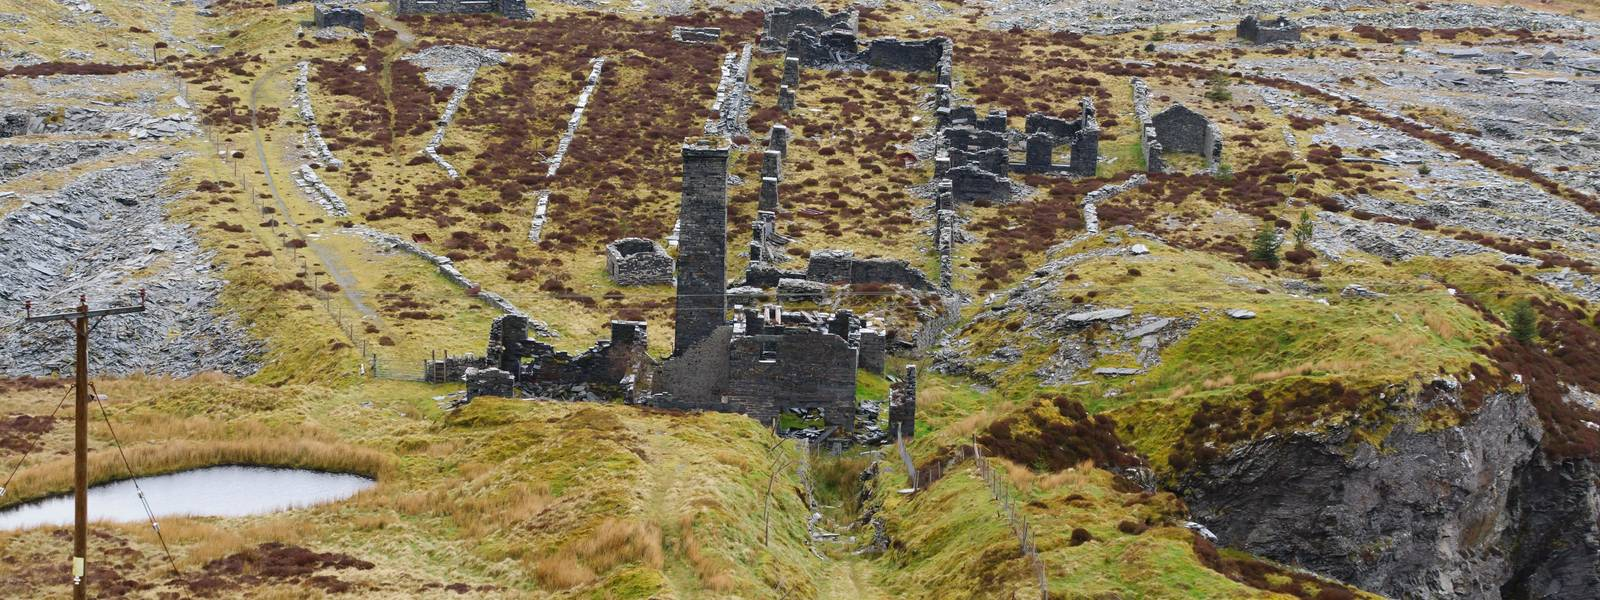 The abandoned Rhiw bach Slate Quarry near Blaenau Ffestiniog in North Wales opened in 1812 closed in 1952 one of many forgot…